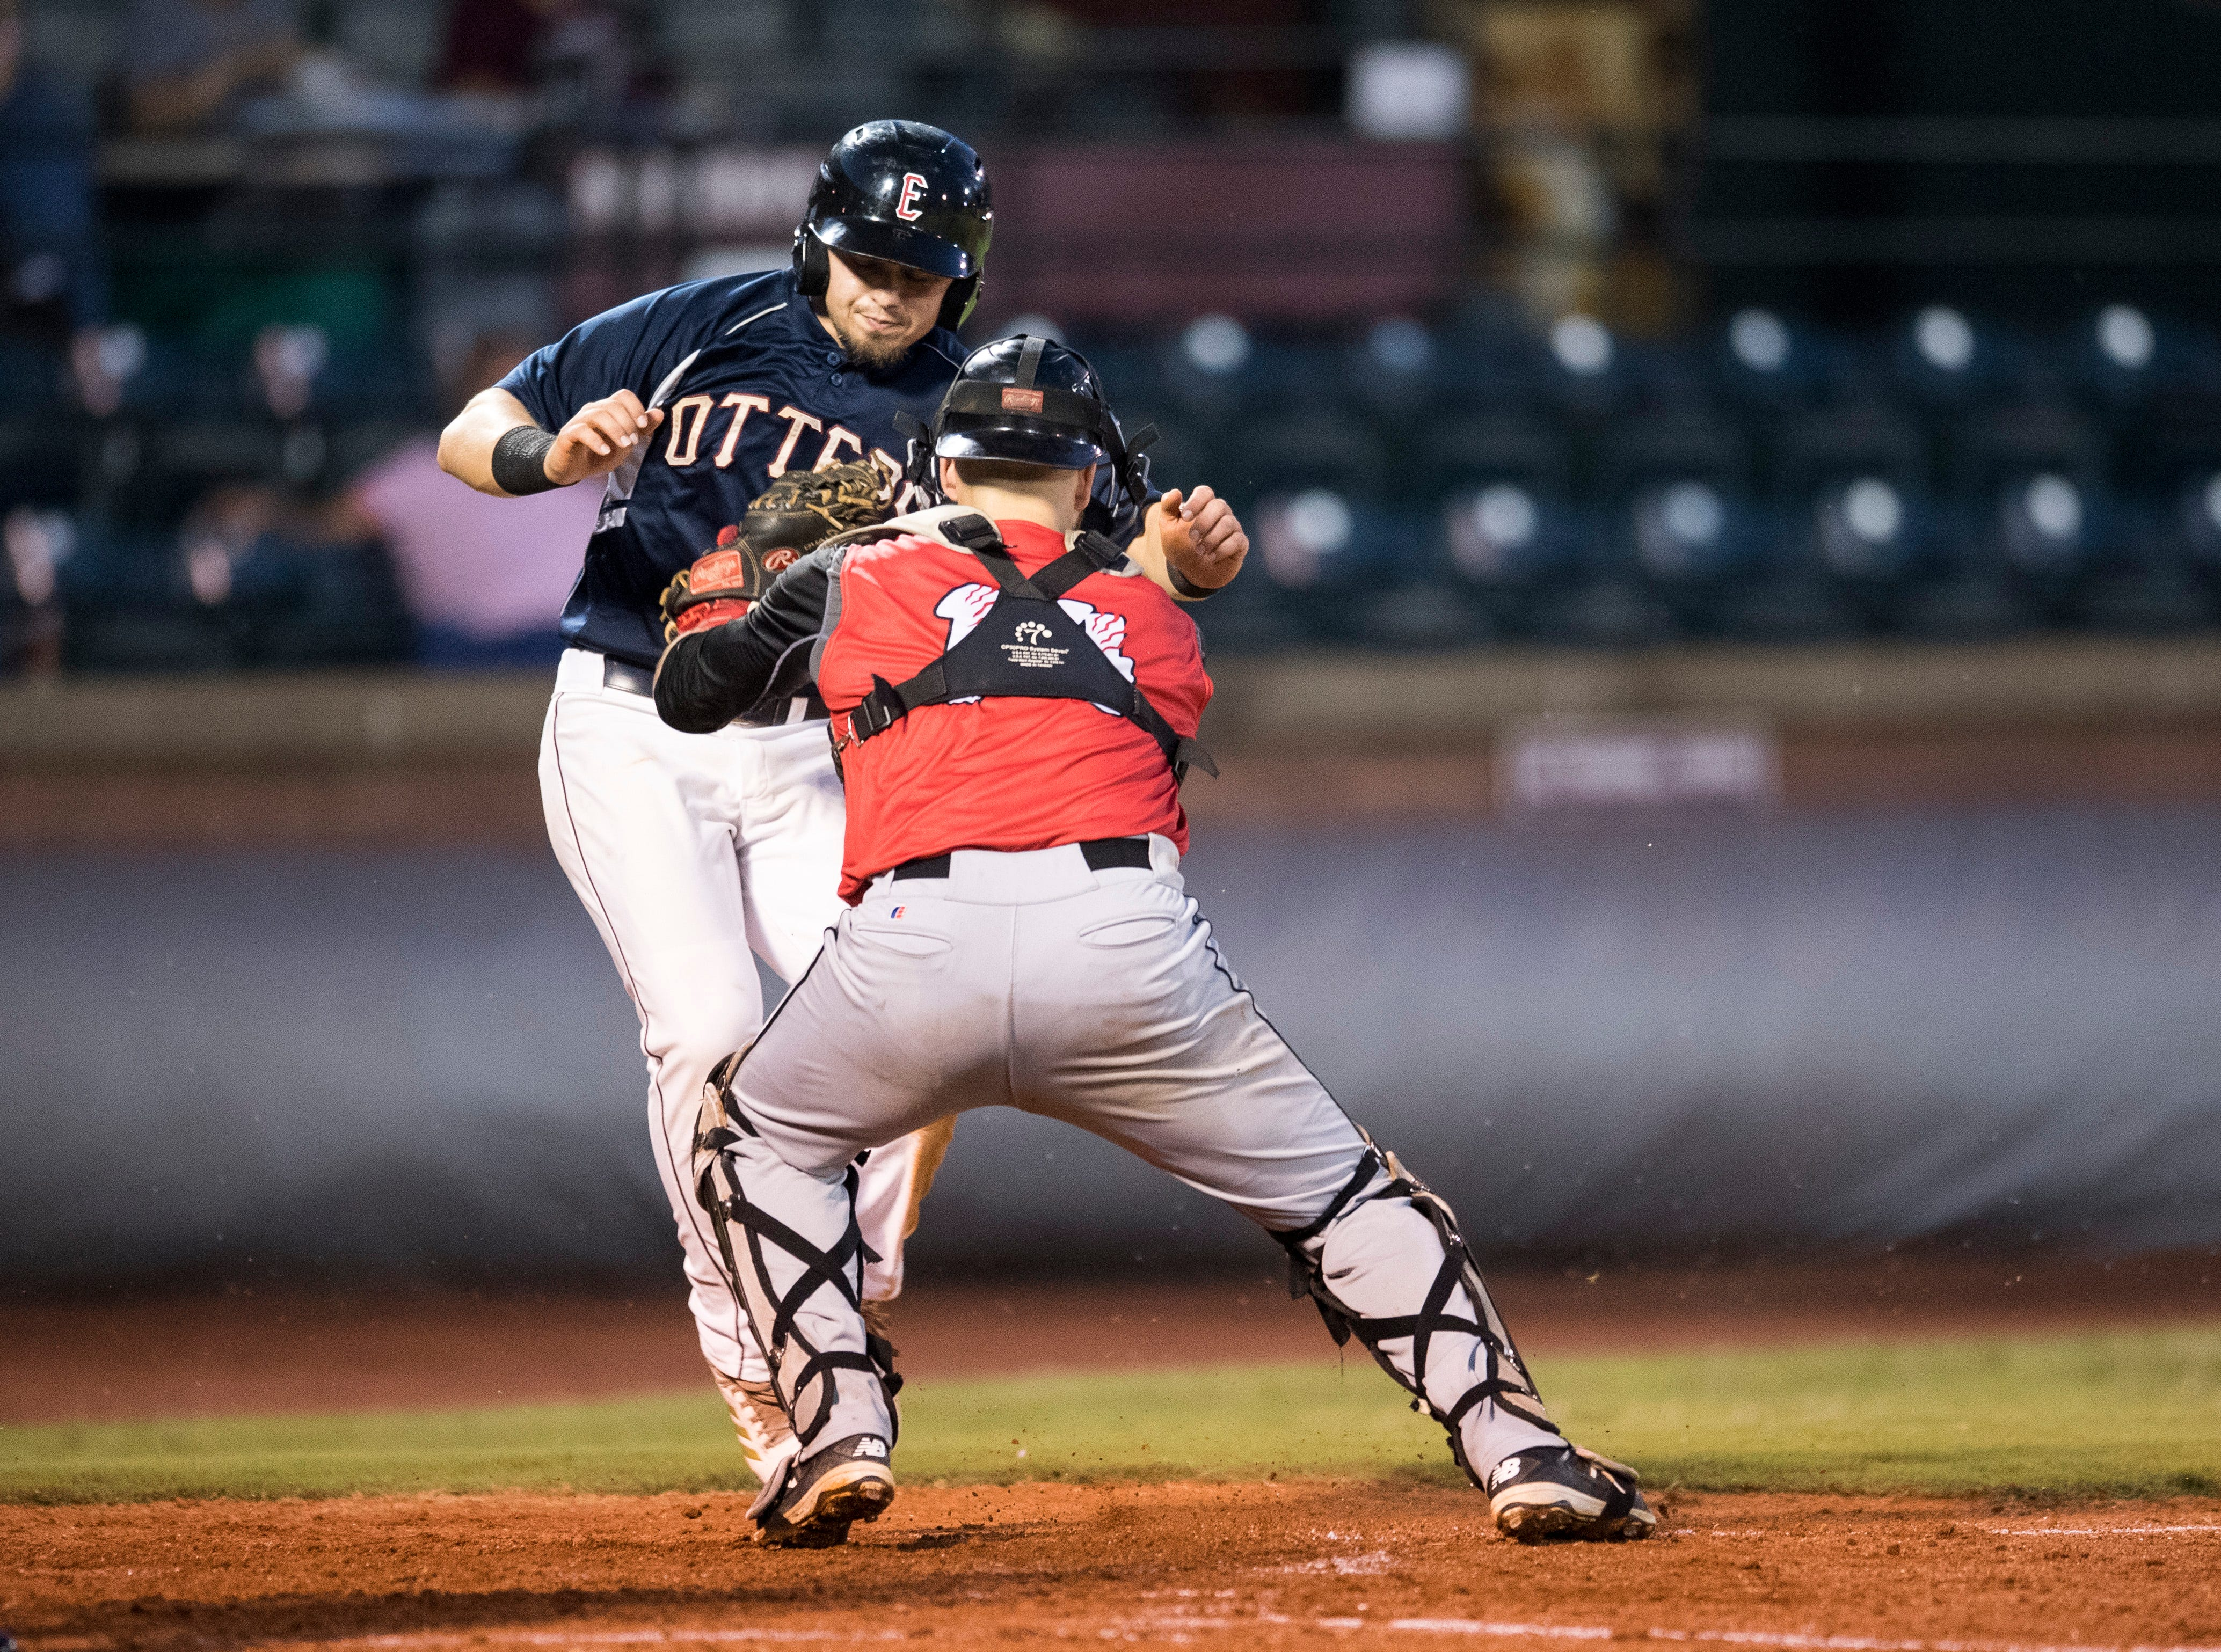 Evansville's Ryan Long (7) attempts to not get tagged at home during game two of the Frontier League Division Series at Bosse Field against the Washington Wild Things Wednesday, September 5, 2018.